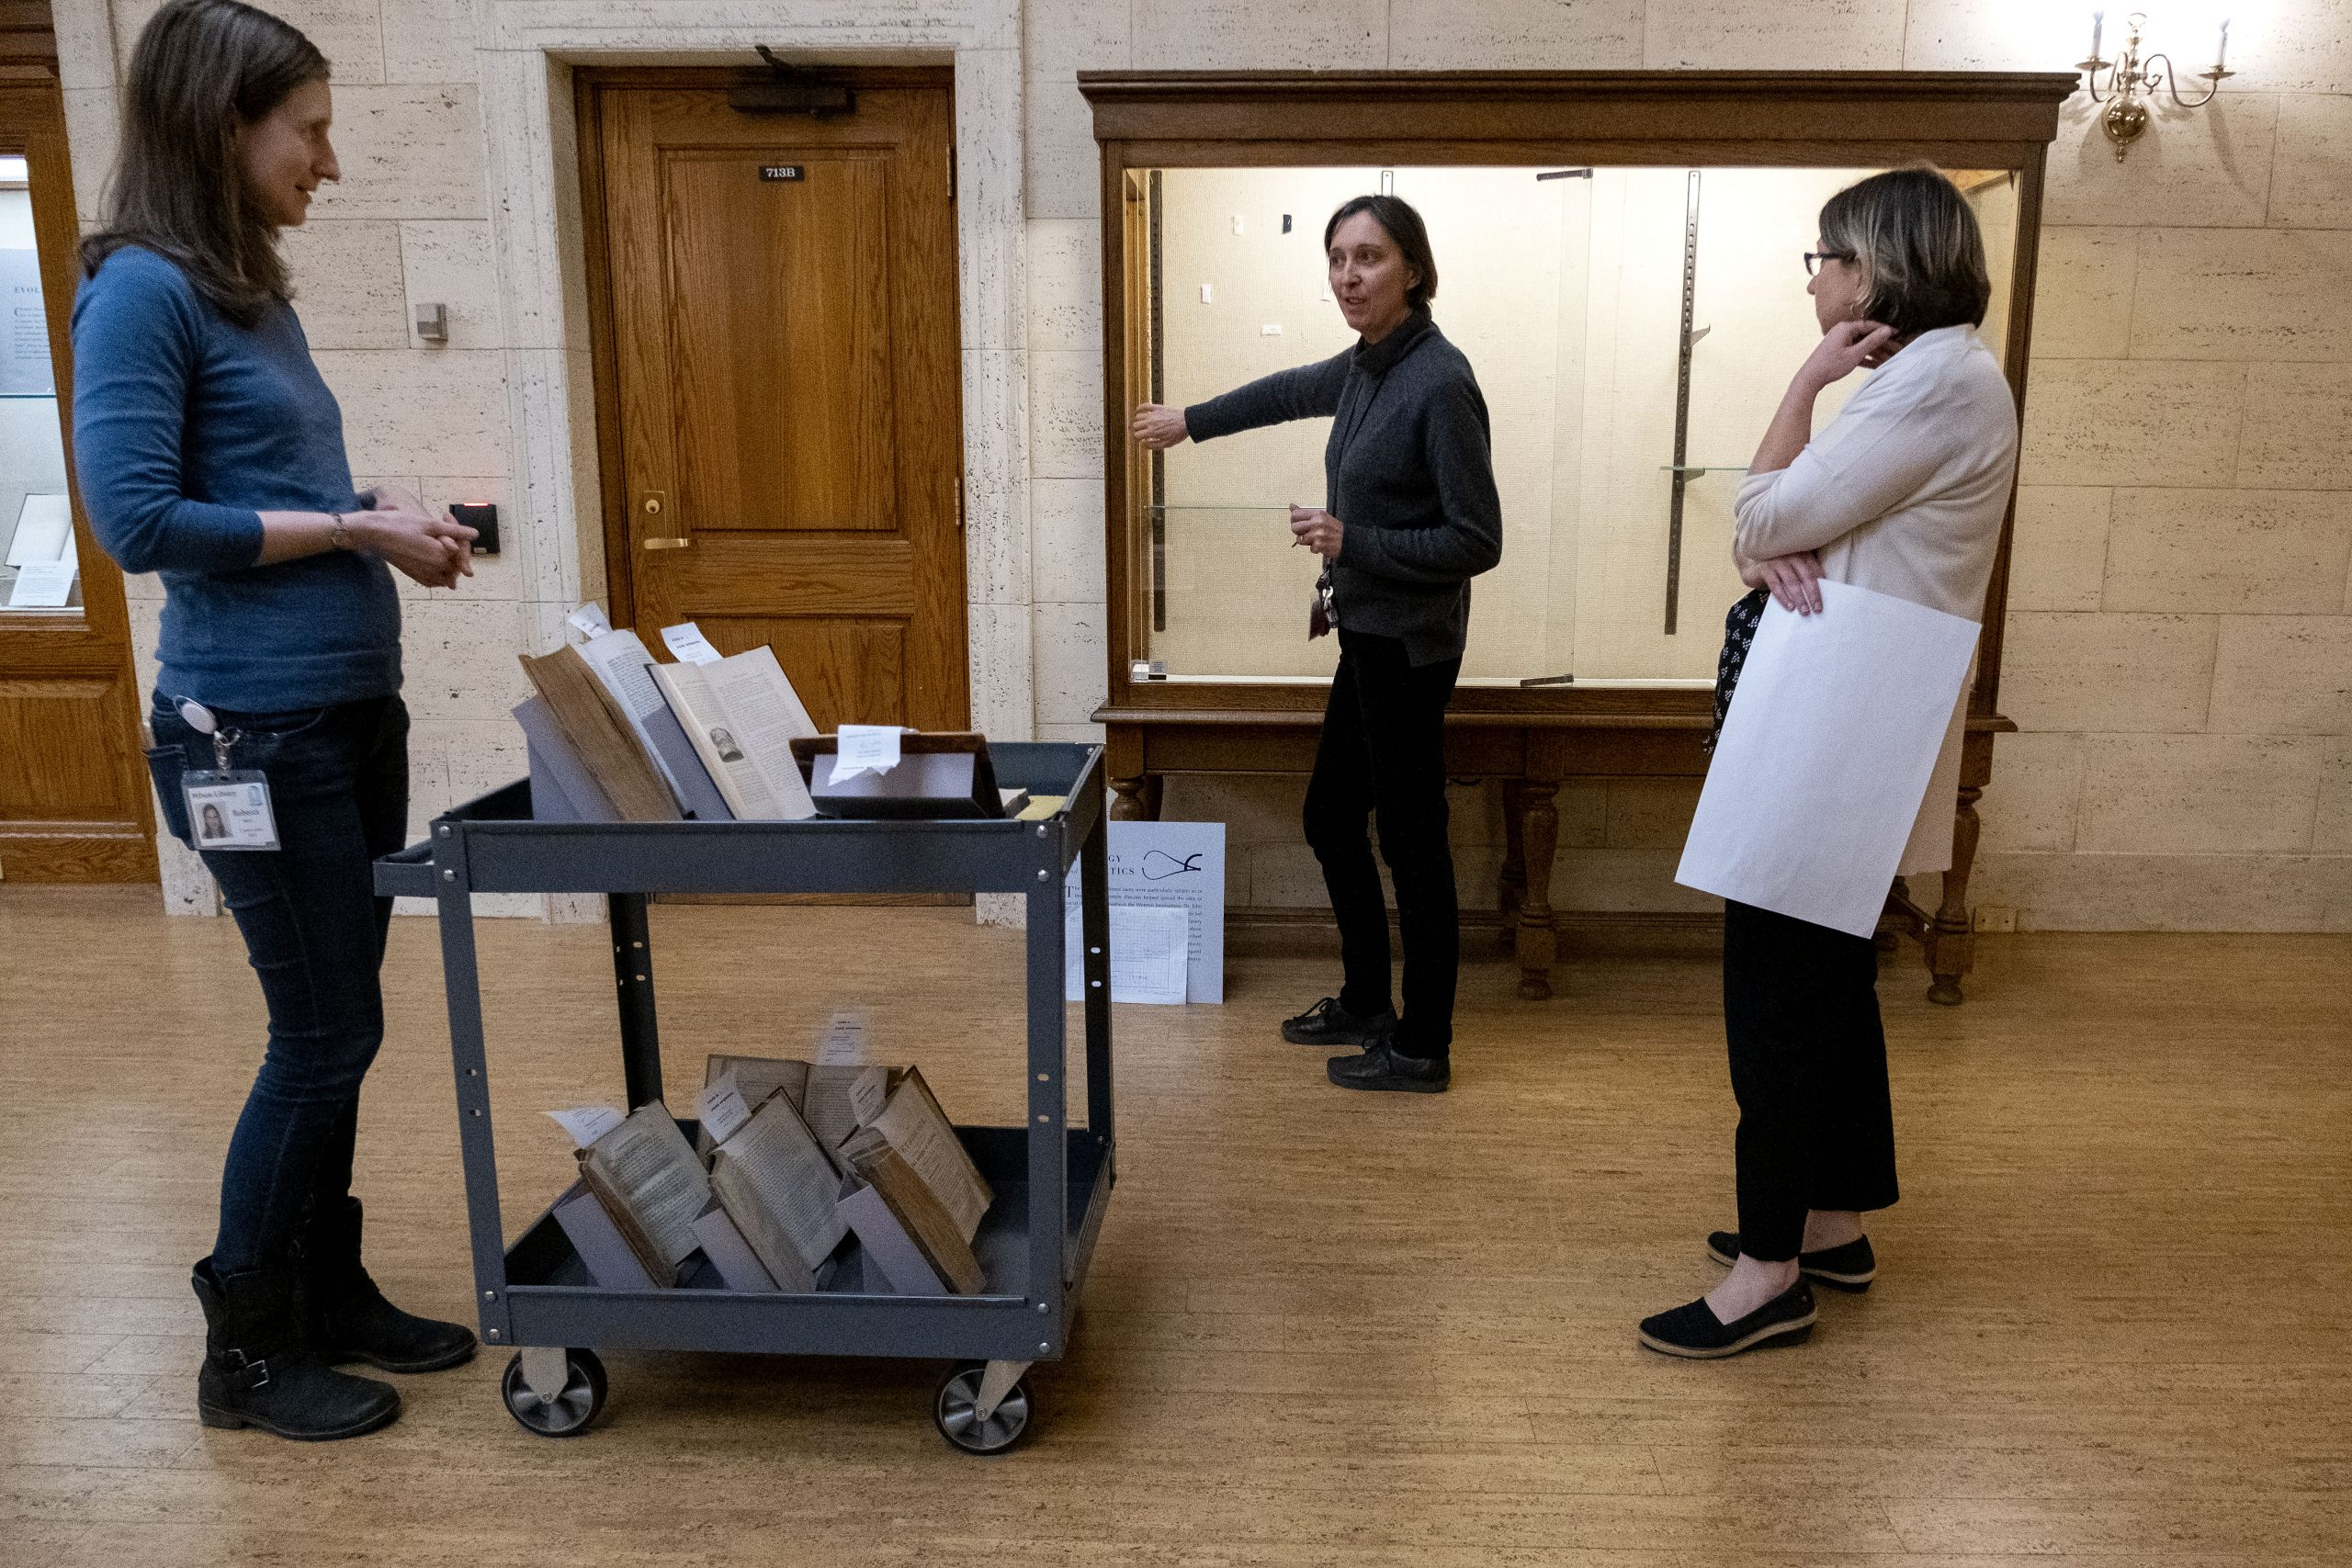 Three women stand in front of a display case with a cart full of books